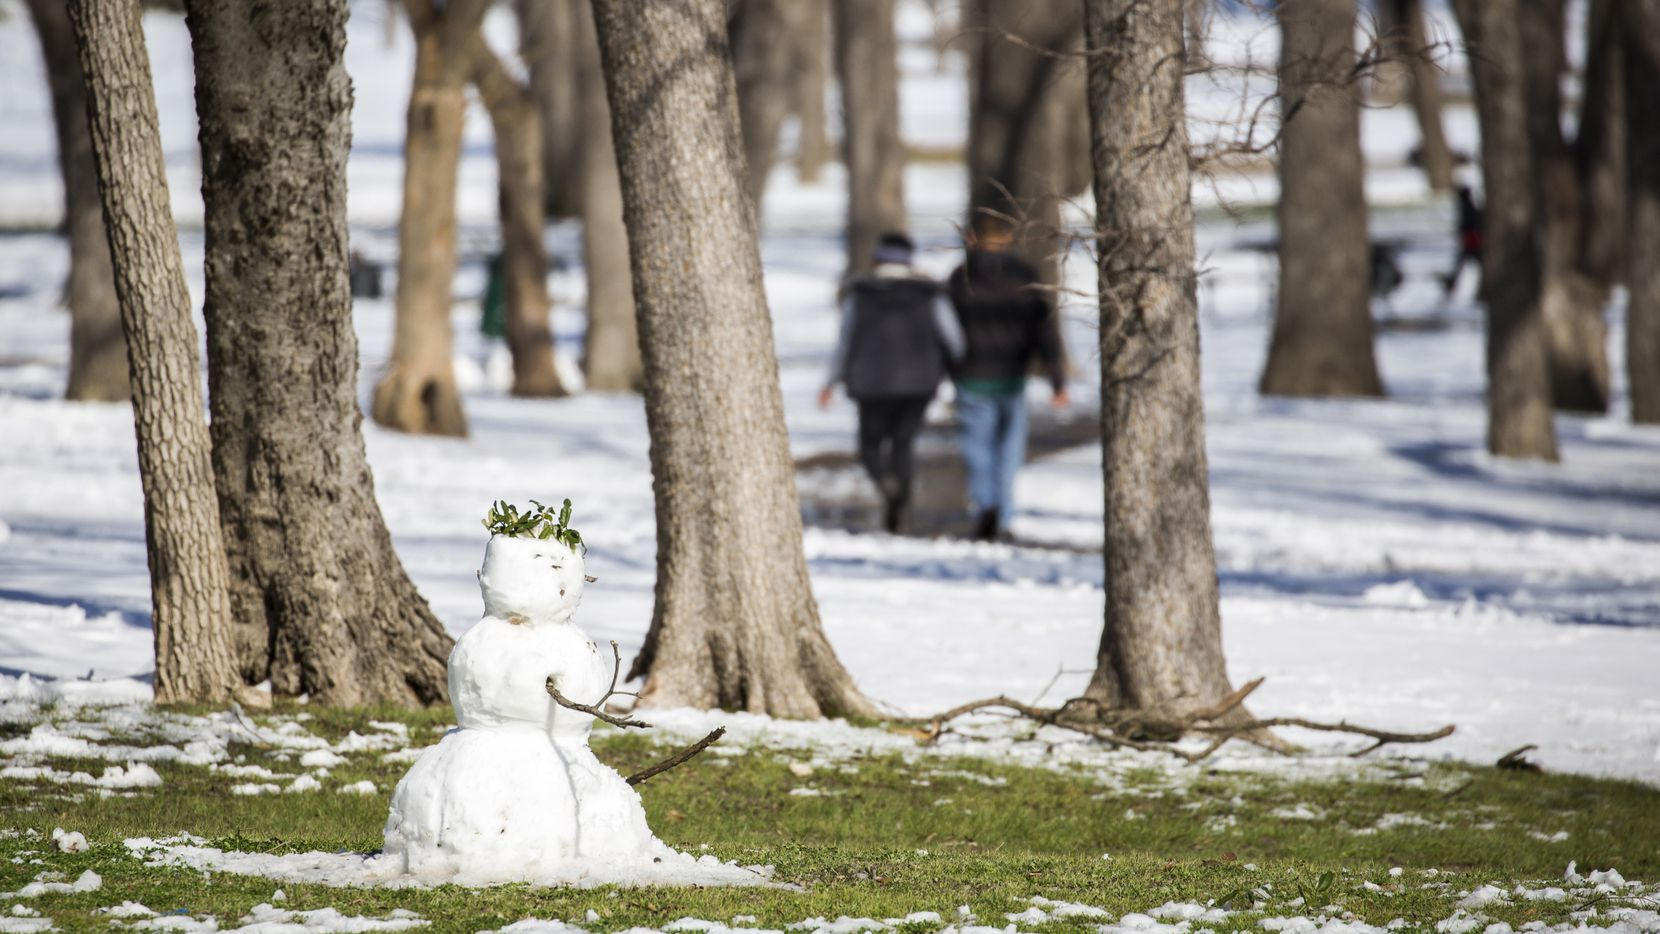 Grass starts to be exposed around a snowman in Tenison Park as warmer afternoon temperatures melt away a record snowfall on Thursday, March 5, 2015, in Dallas. Overnight snow and sleet blanketed the region overnight piling up to 2 to 5 inches across much of the area.